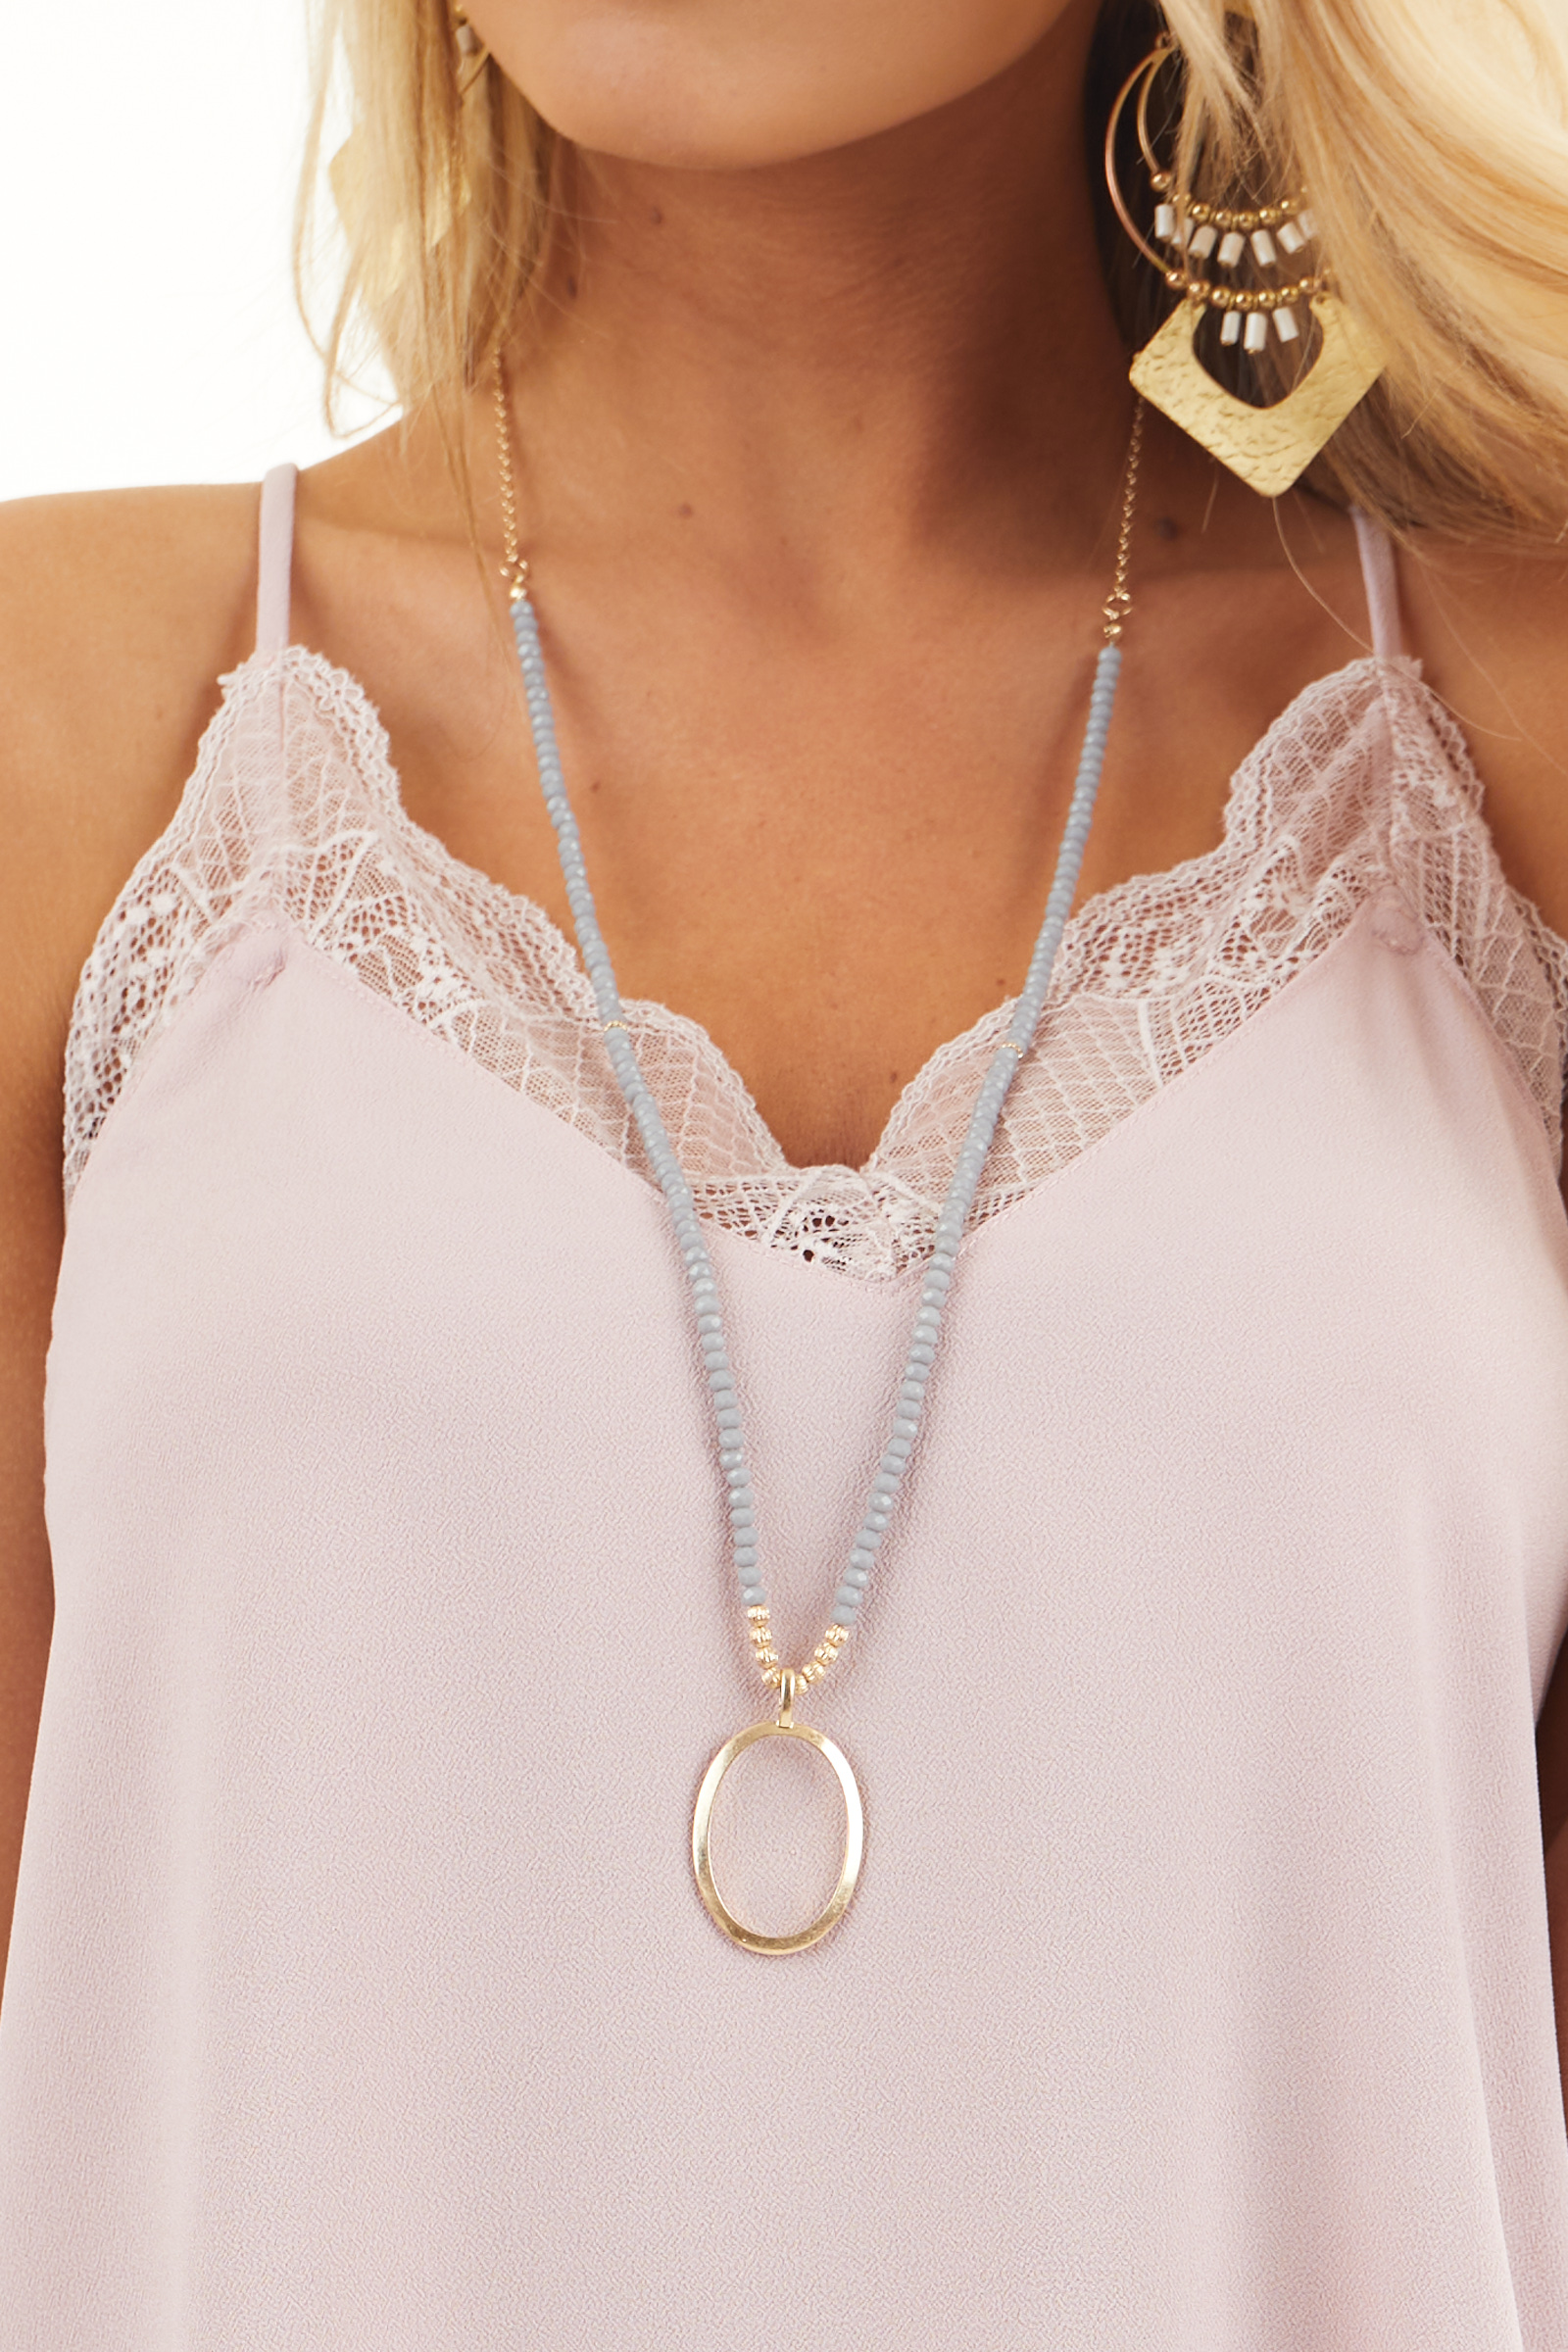 Gold Long Necklace with Grey Beads and Oval Pendant